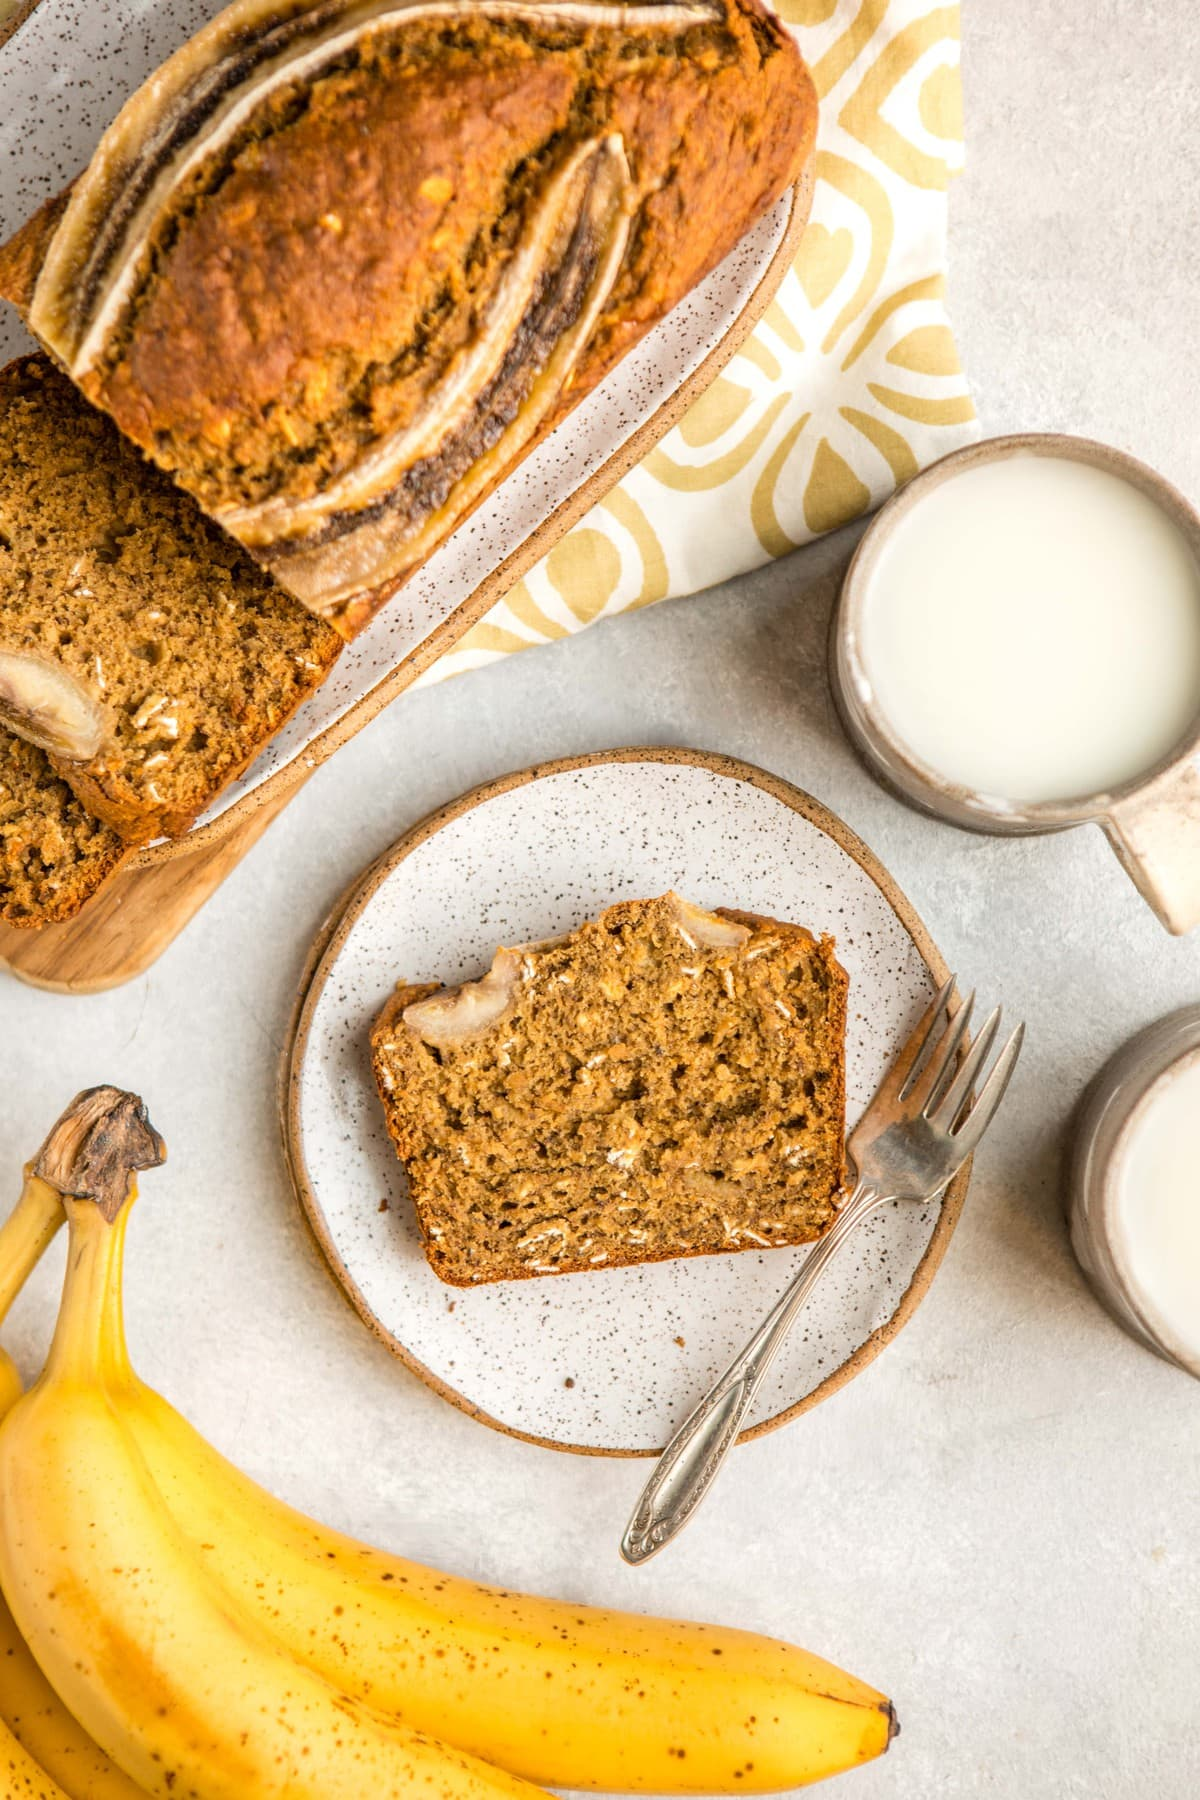 slice of vegan banana bread on small white plate next to loaf on white serving platter